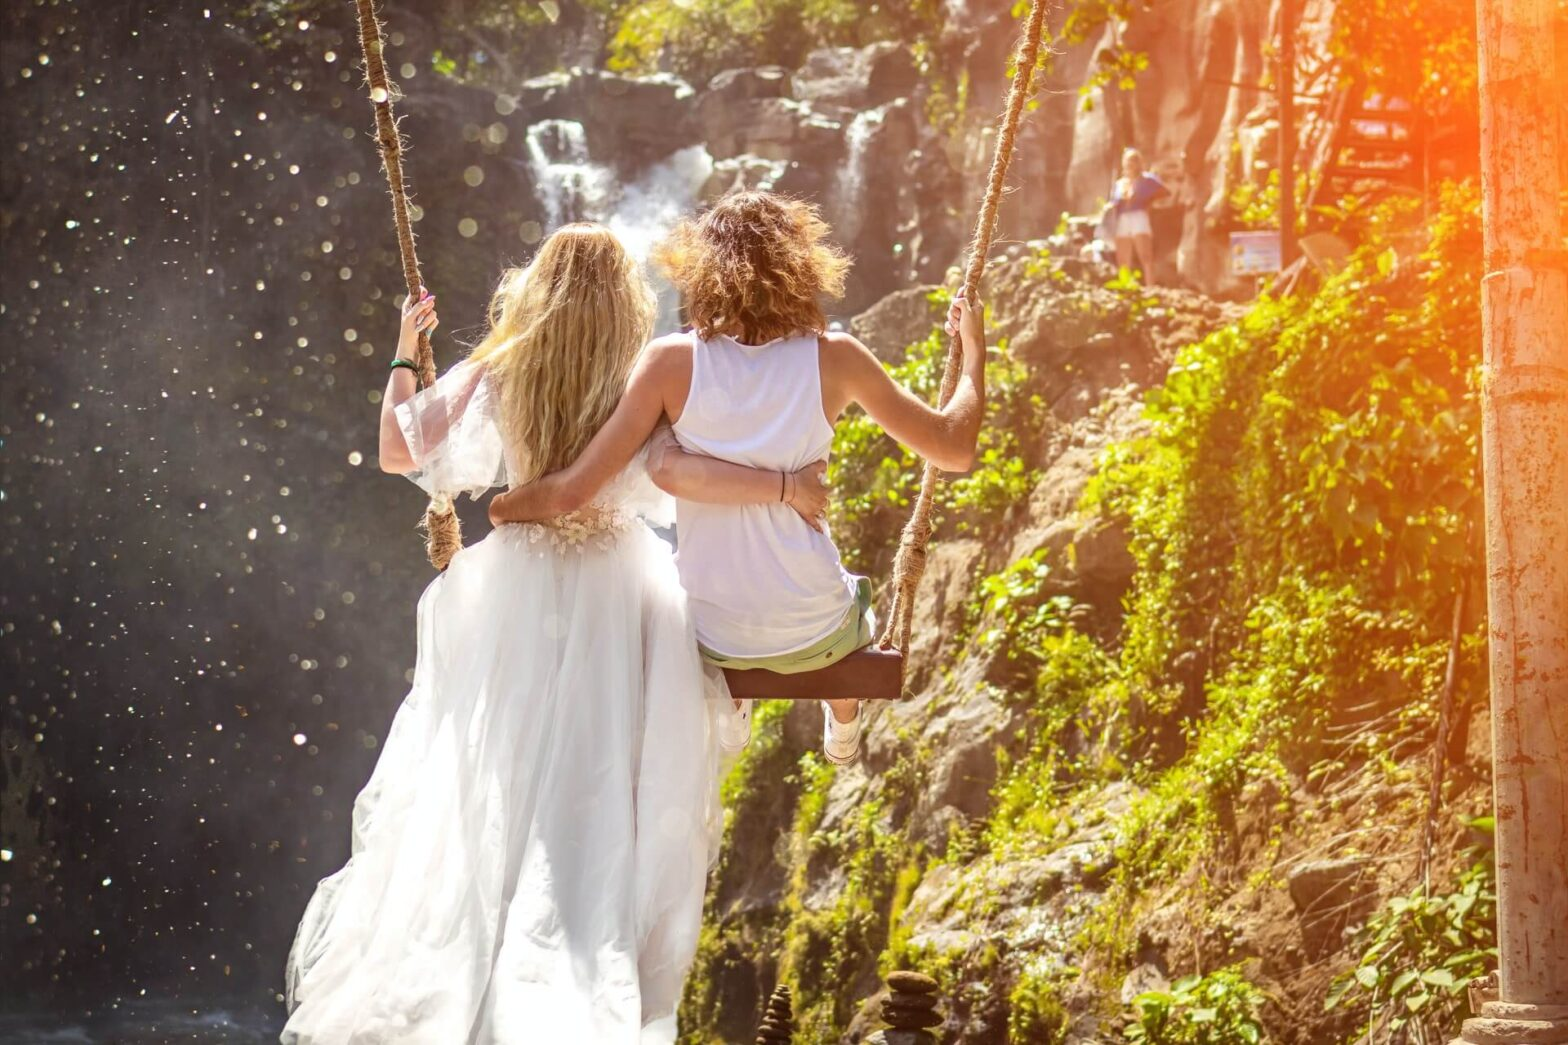 India to Bali Honeymoon Packages (All Inclusive Cost & Itinerary)